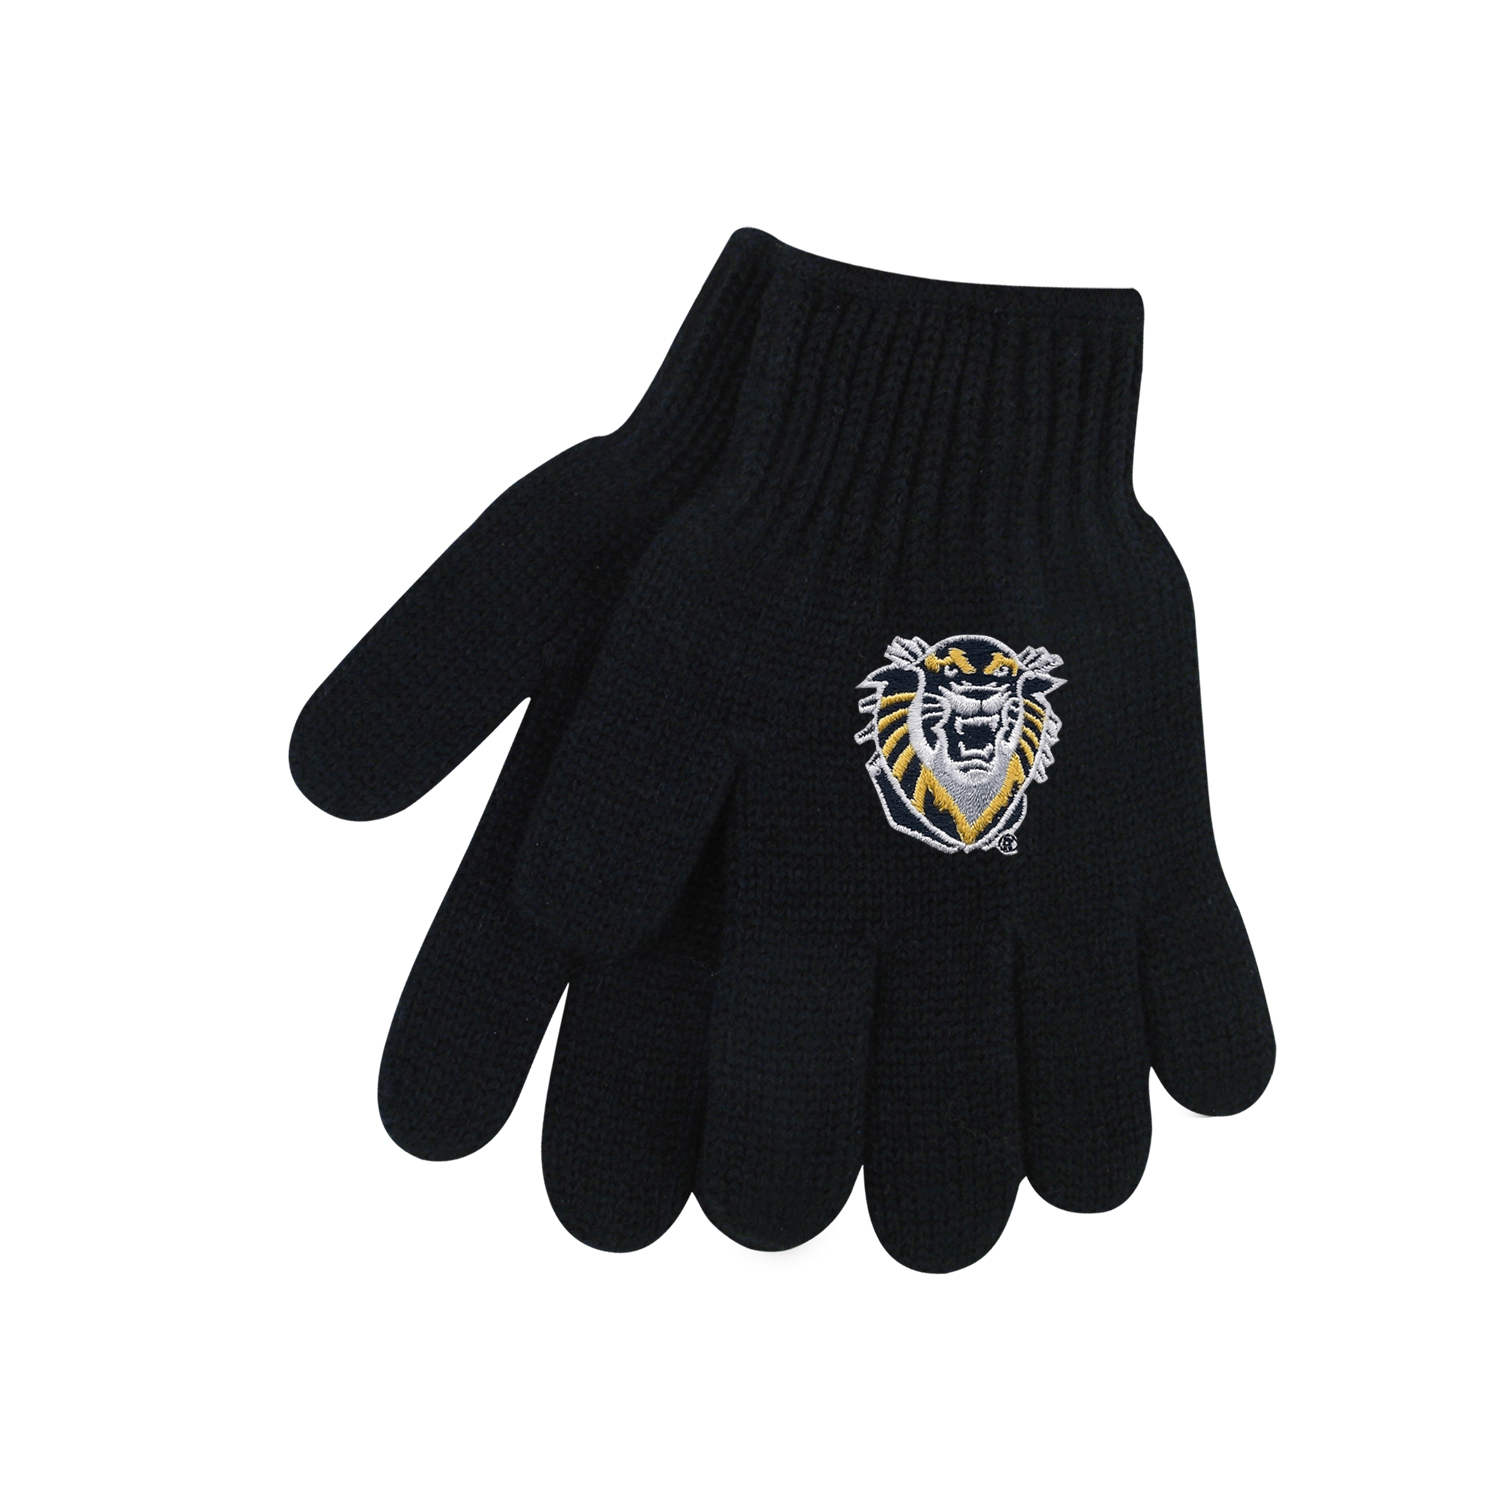 Image for the Youth Tailgate Knit Glove product